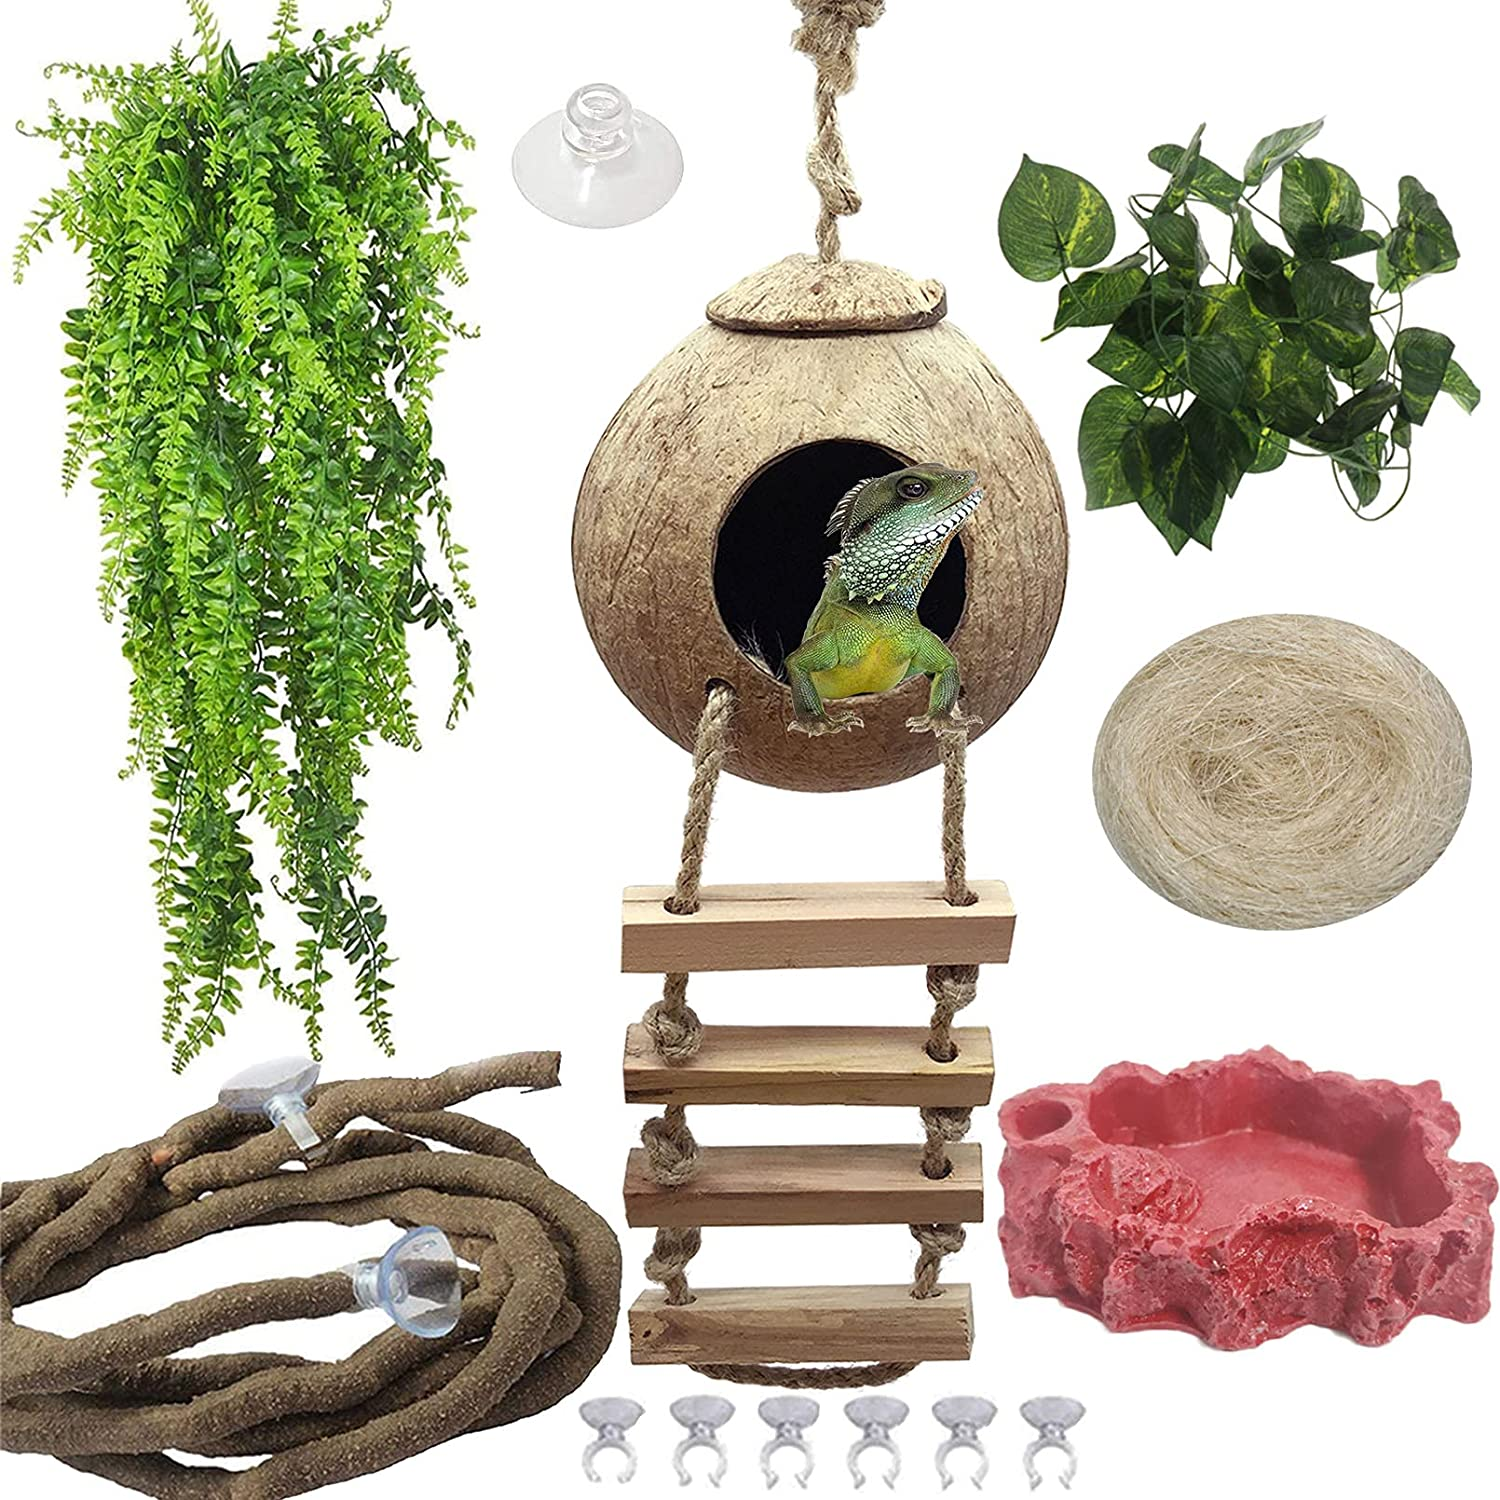 Hamiledyi Crested Gecko Coco Hut Natural Reptile Coconut Hideouts Lizard Water Food Bowls Climbing Porch Hiding Sleeping Breeding Pad Jungle Vine Flexible Reptile Leaves for Bearded Dragon 6PCS